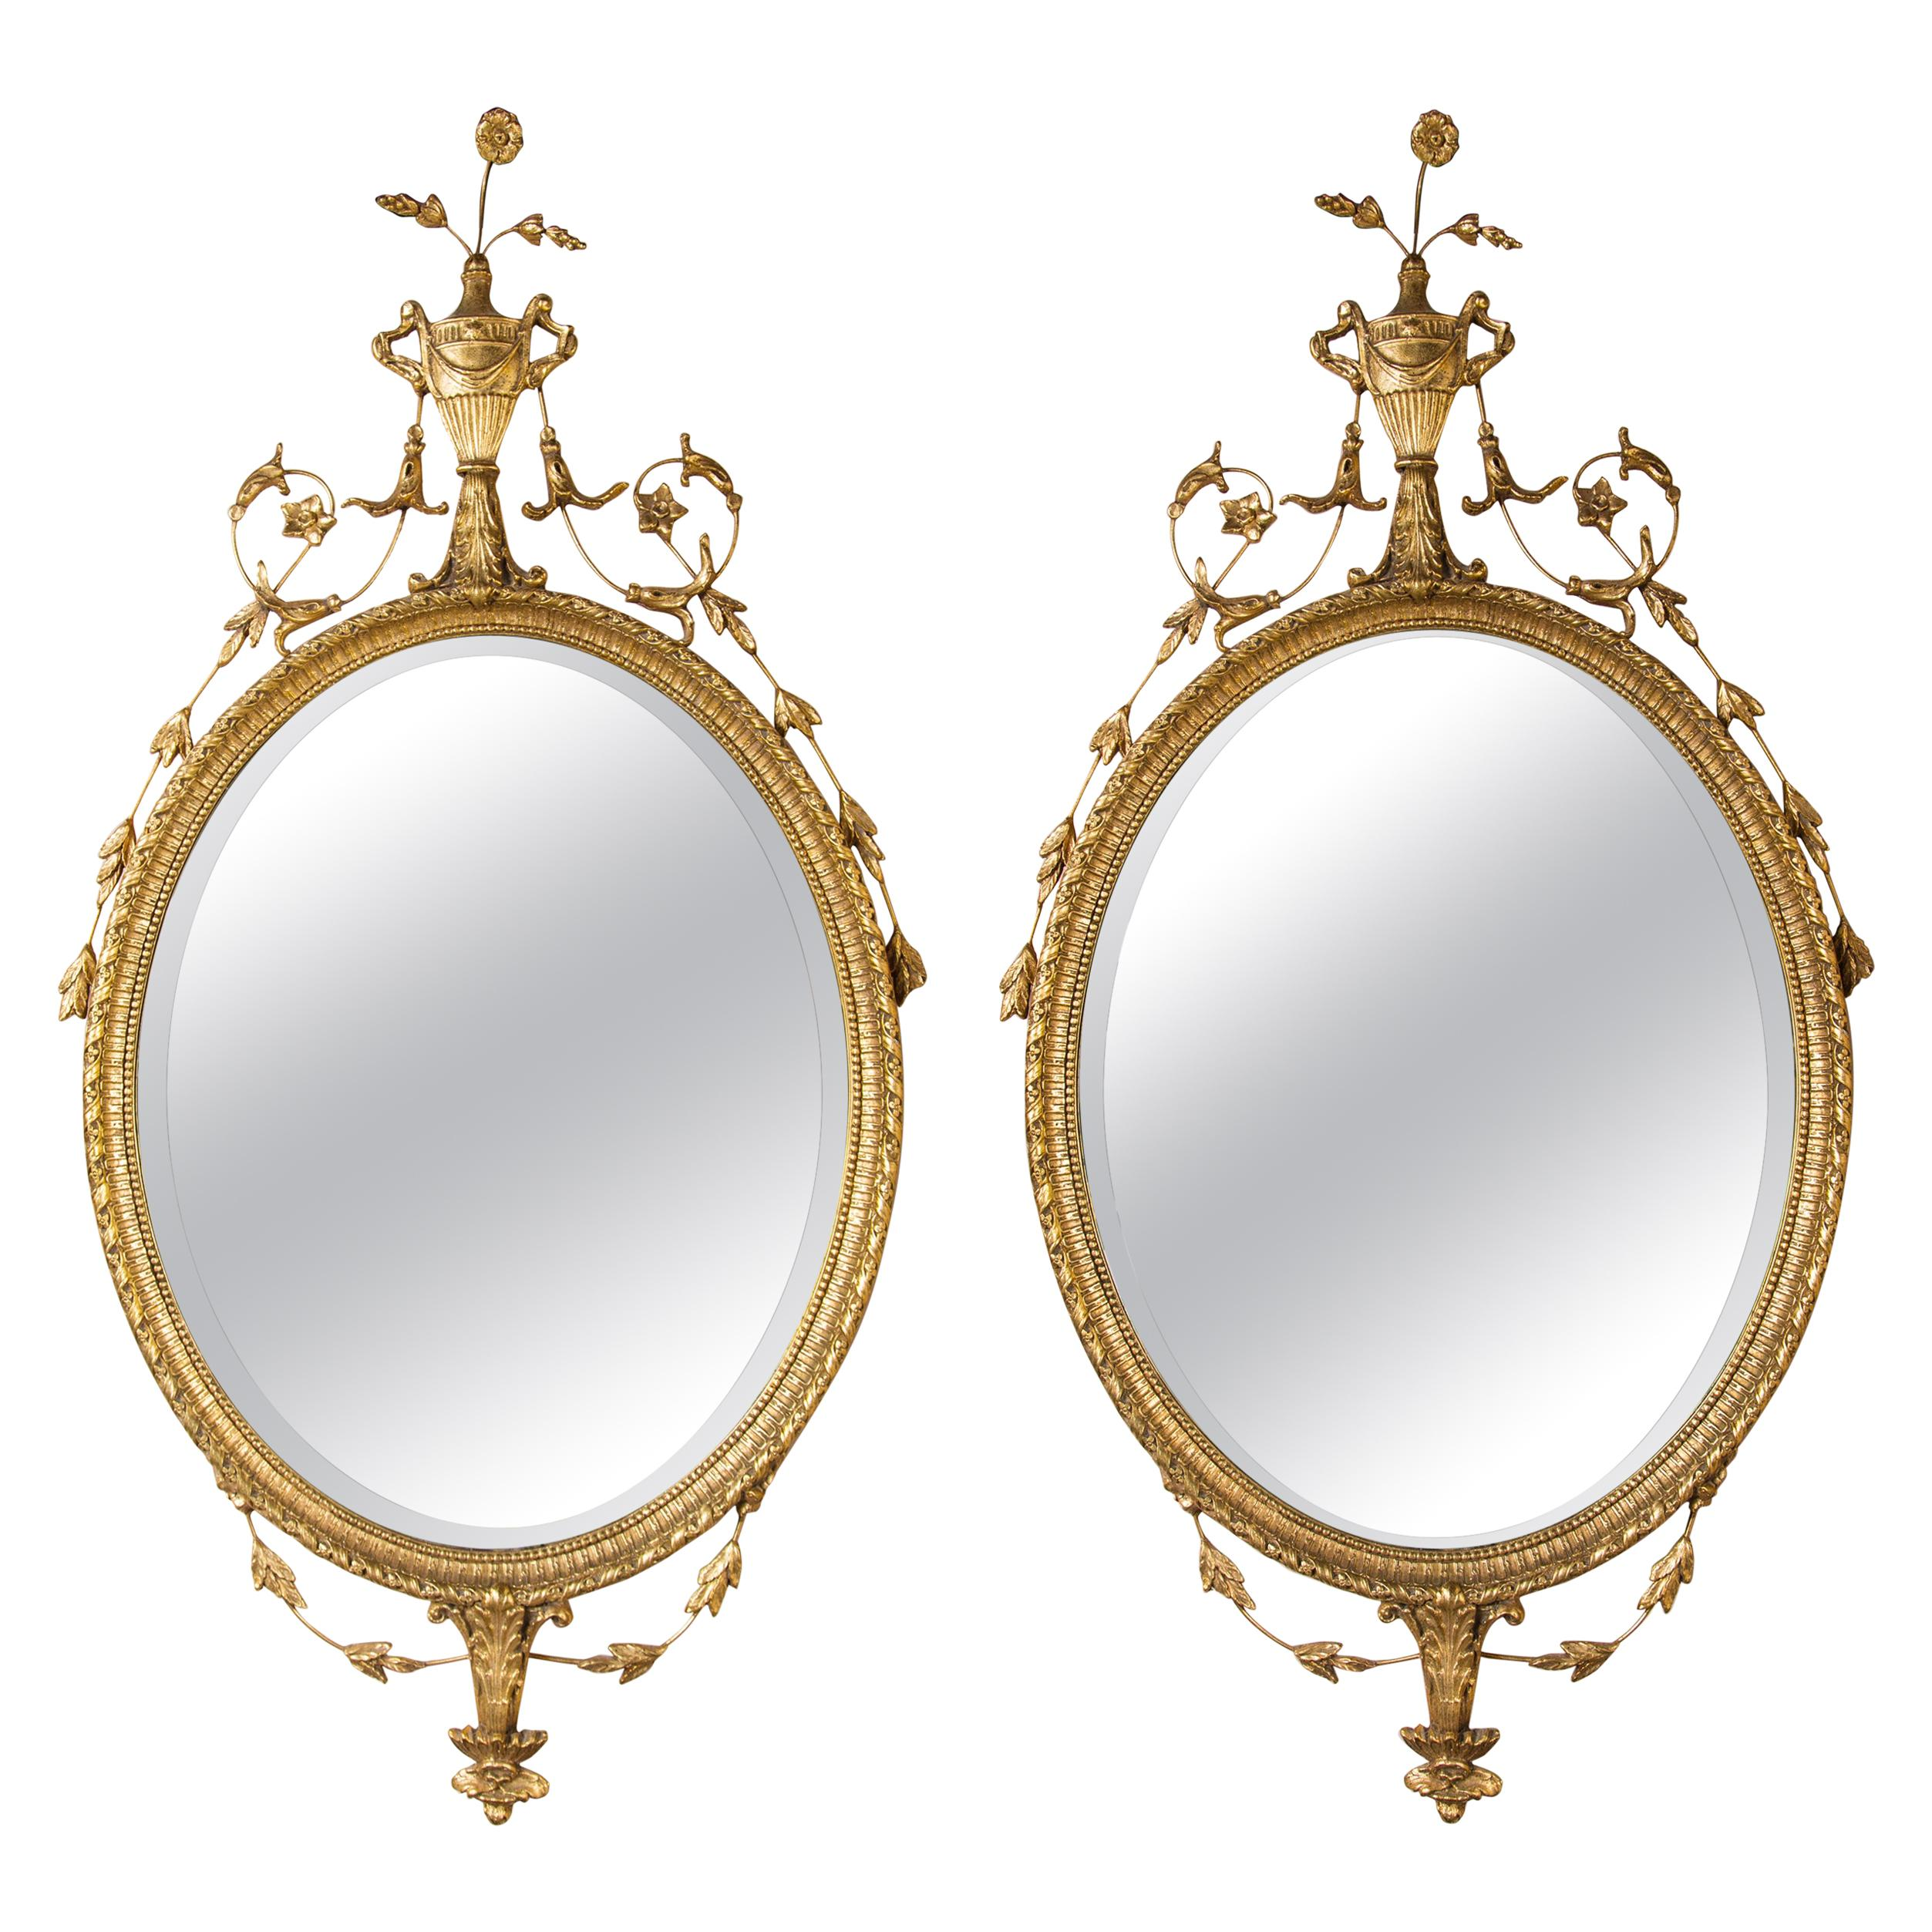 Pair of Giltwood George III Style Oval Mirrors